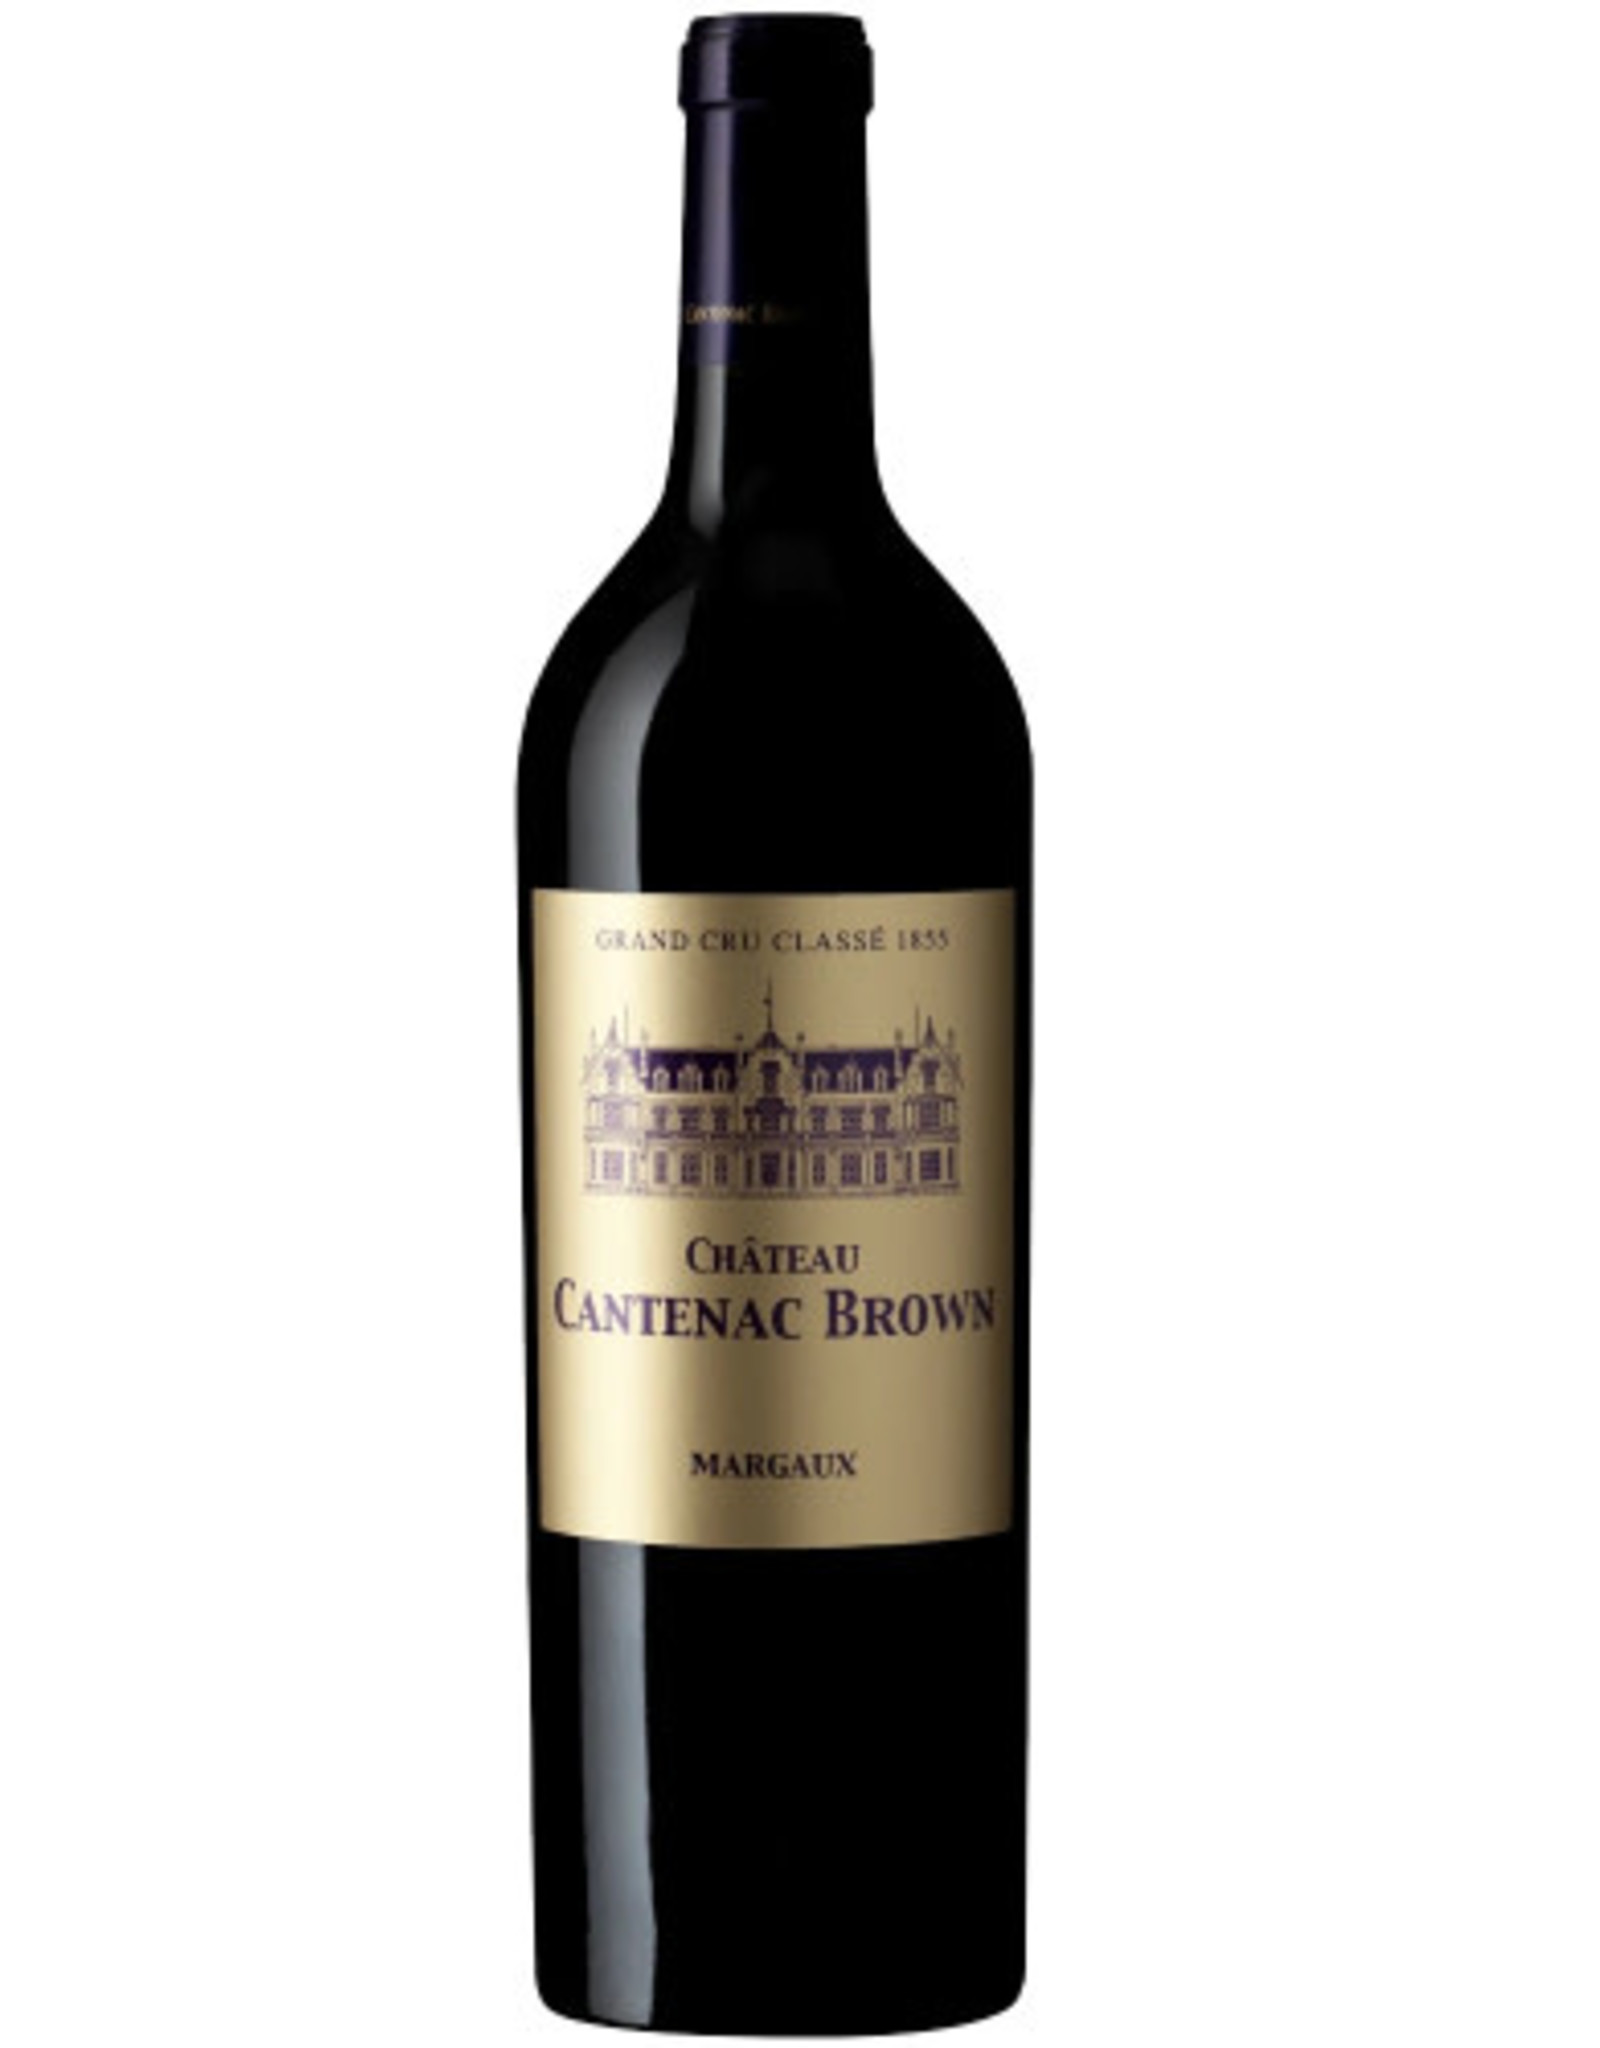 France Ch. Cantenac Brown Margaux Grand Cru Classe 2012